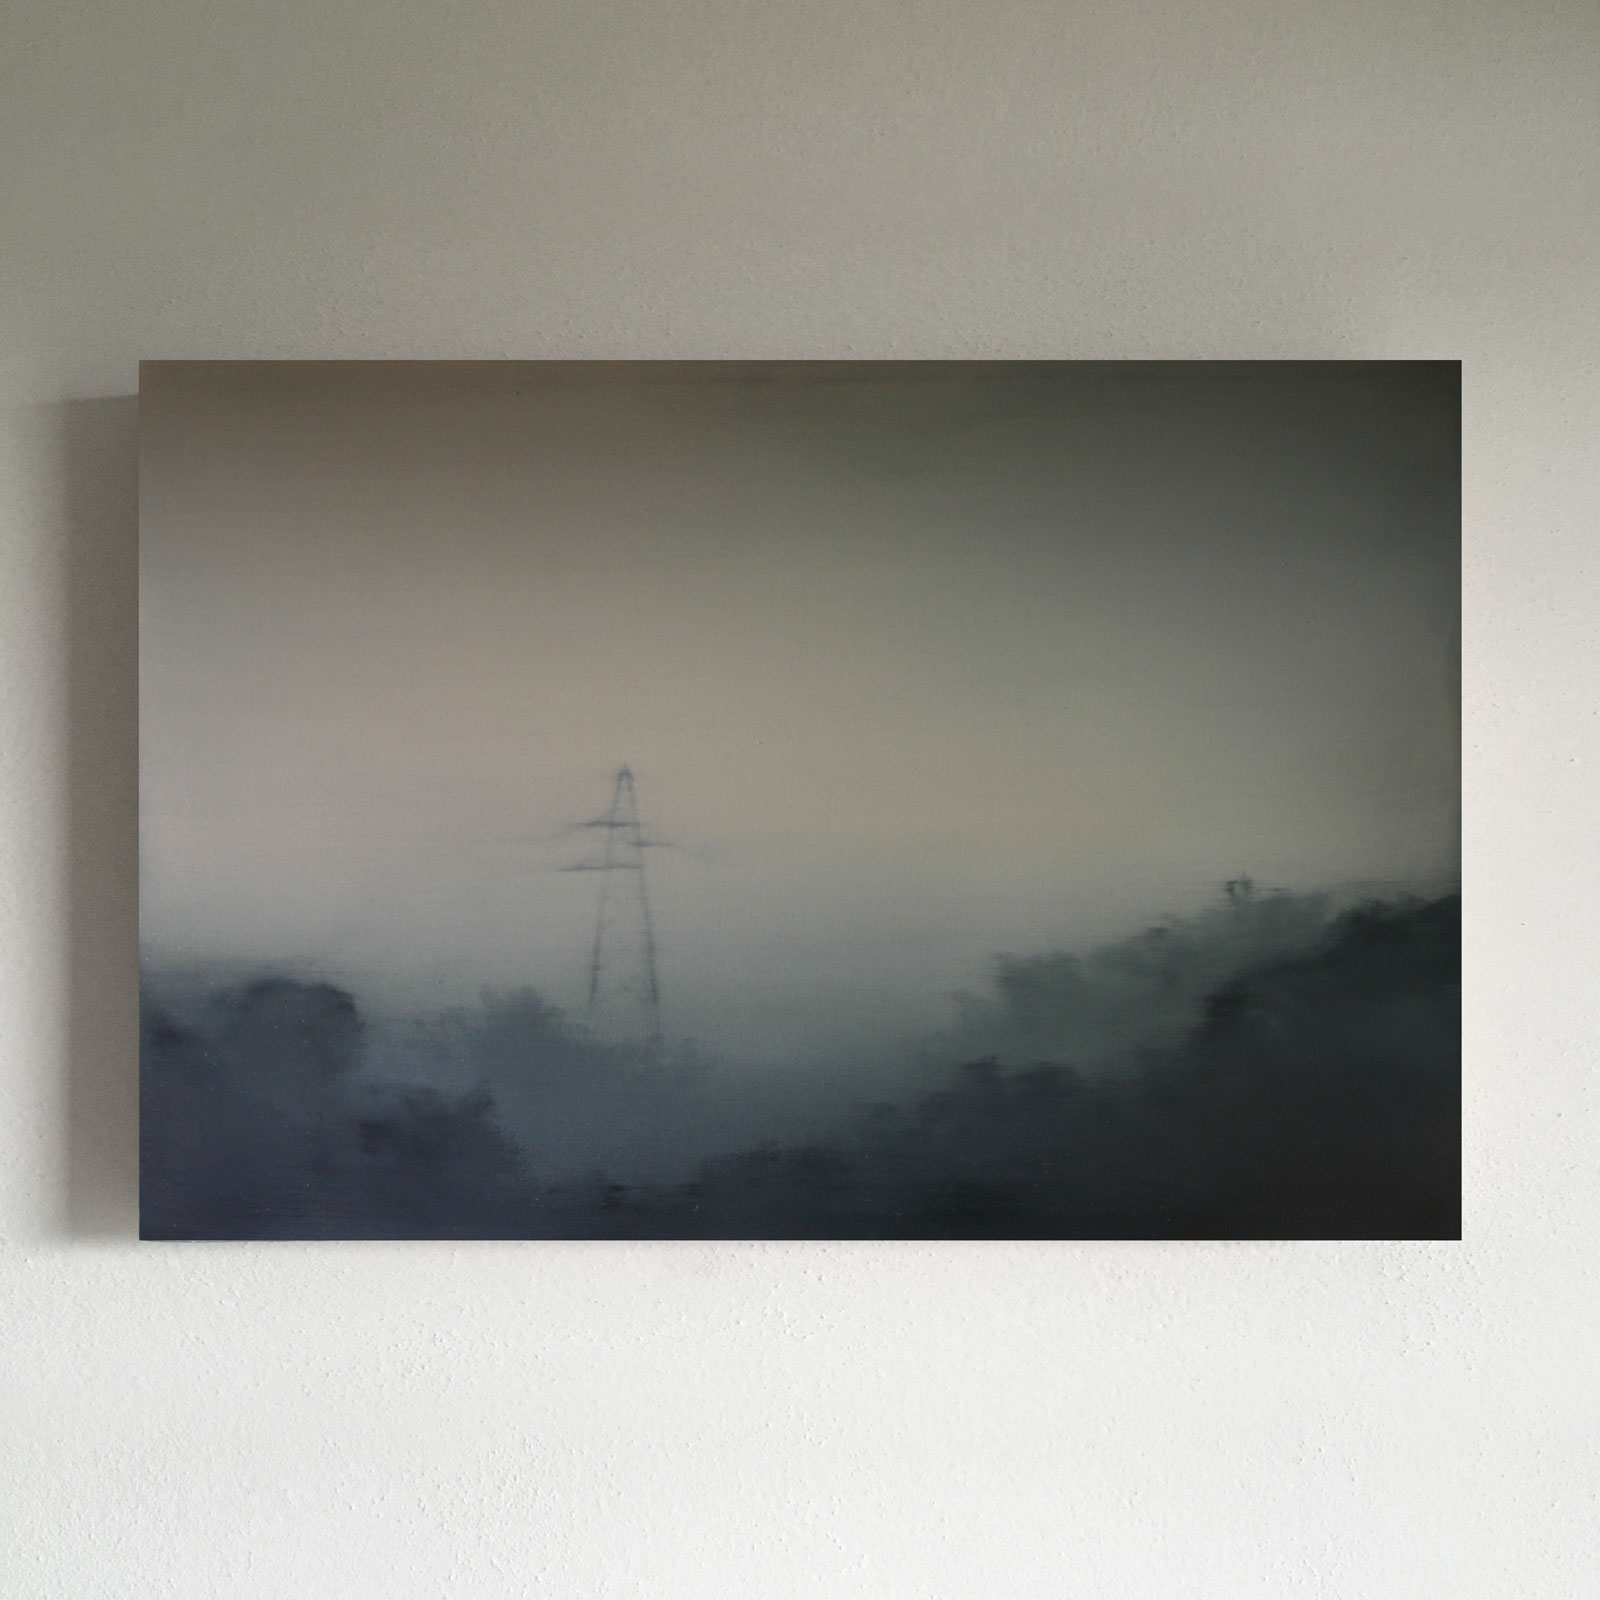 T#15-2009, 80x120cm, oil on canvas